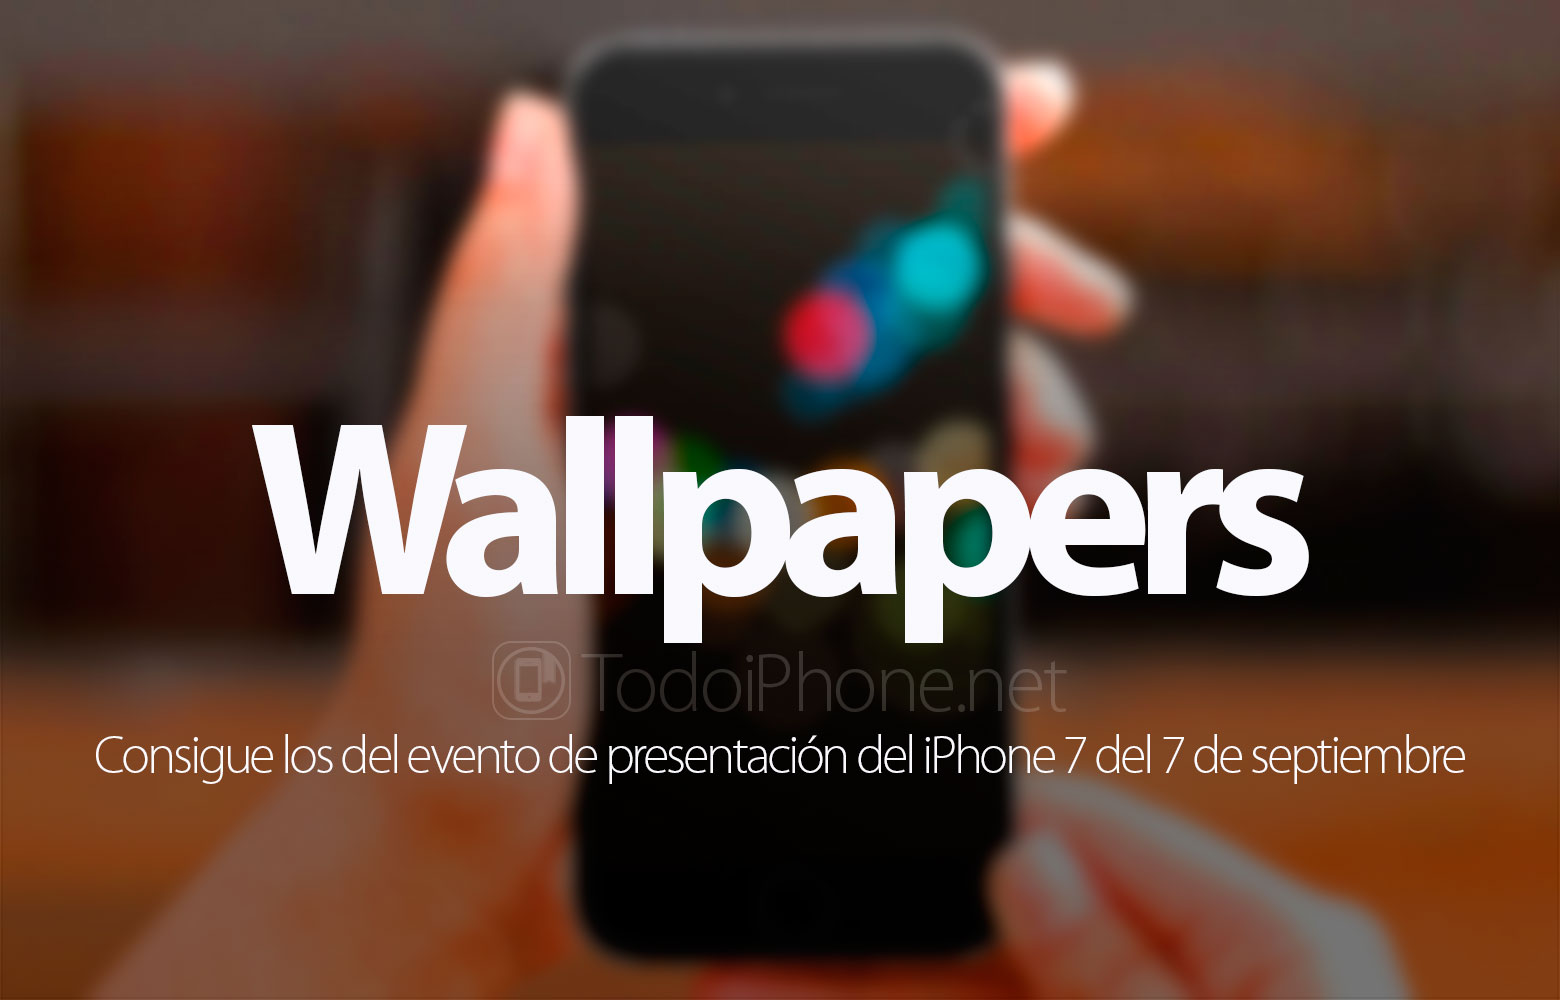 evento-iphone-7-wallpapers